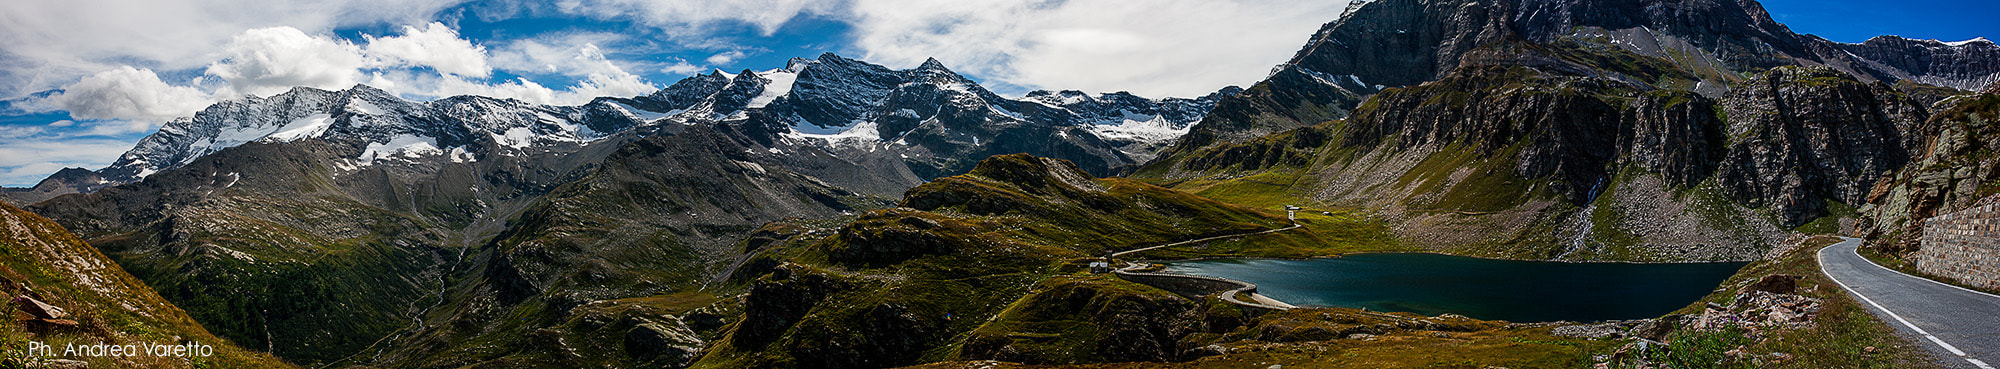 Photograph Valle dell'Orco - Panoramica by Andrea Varetto on 500px